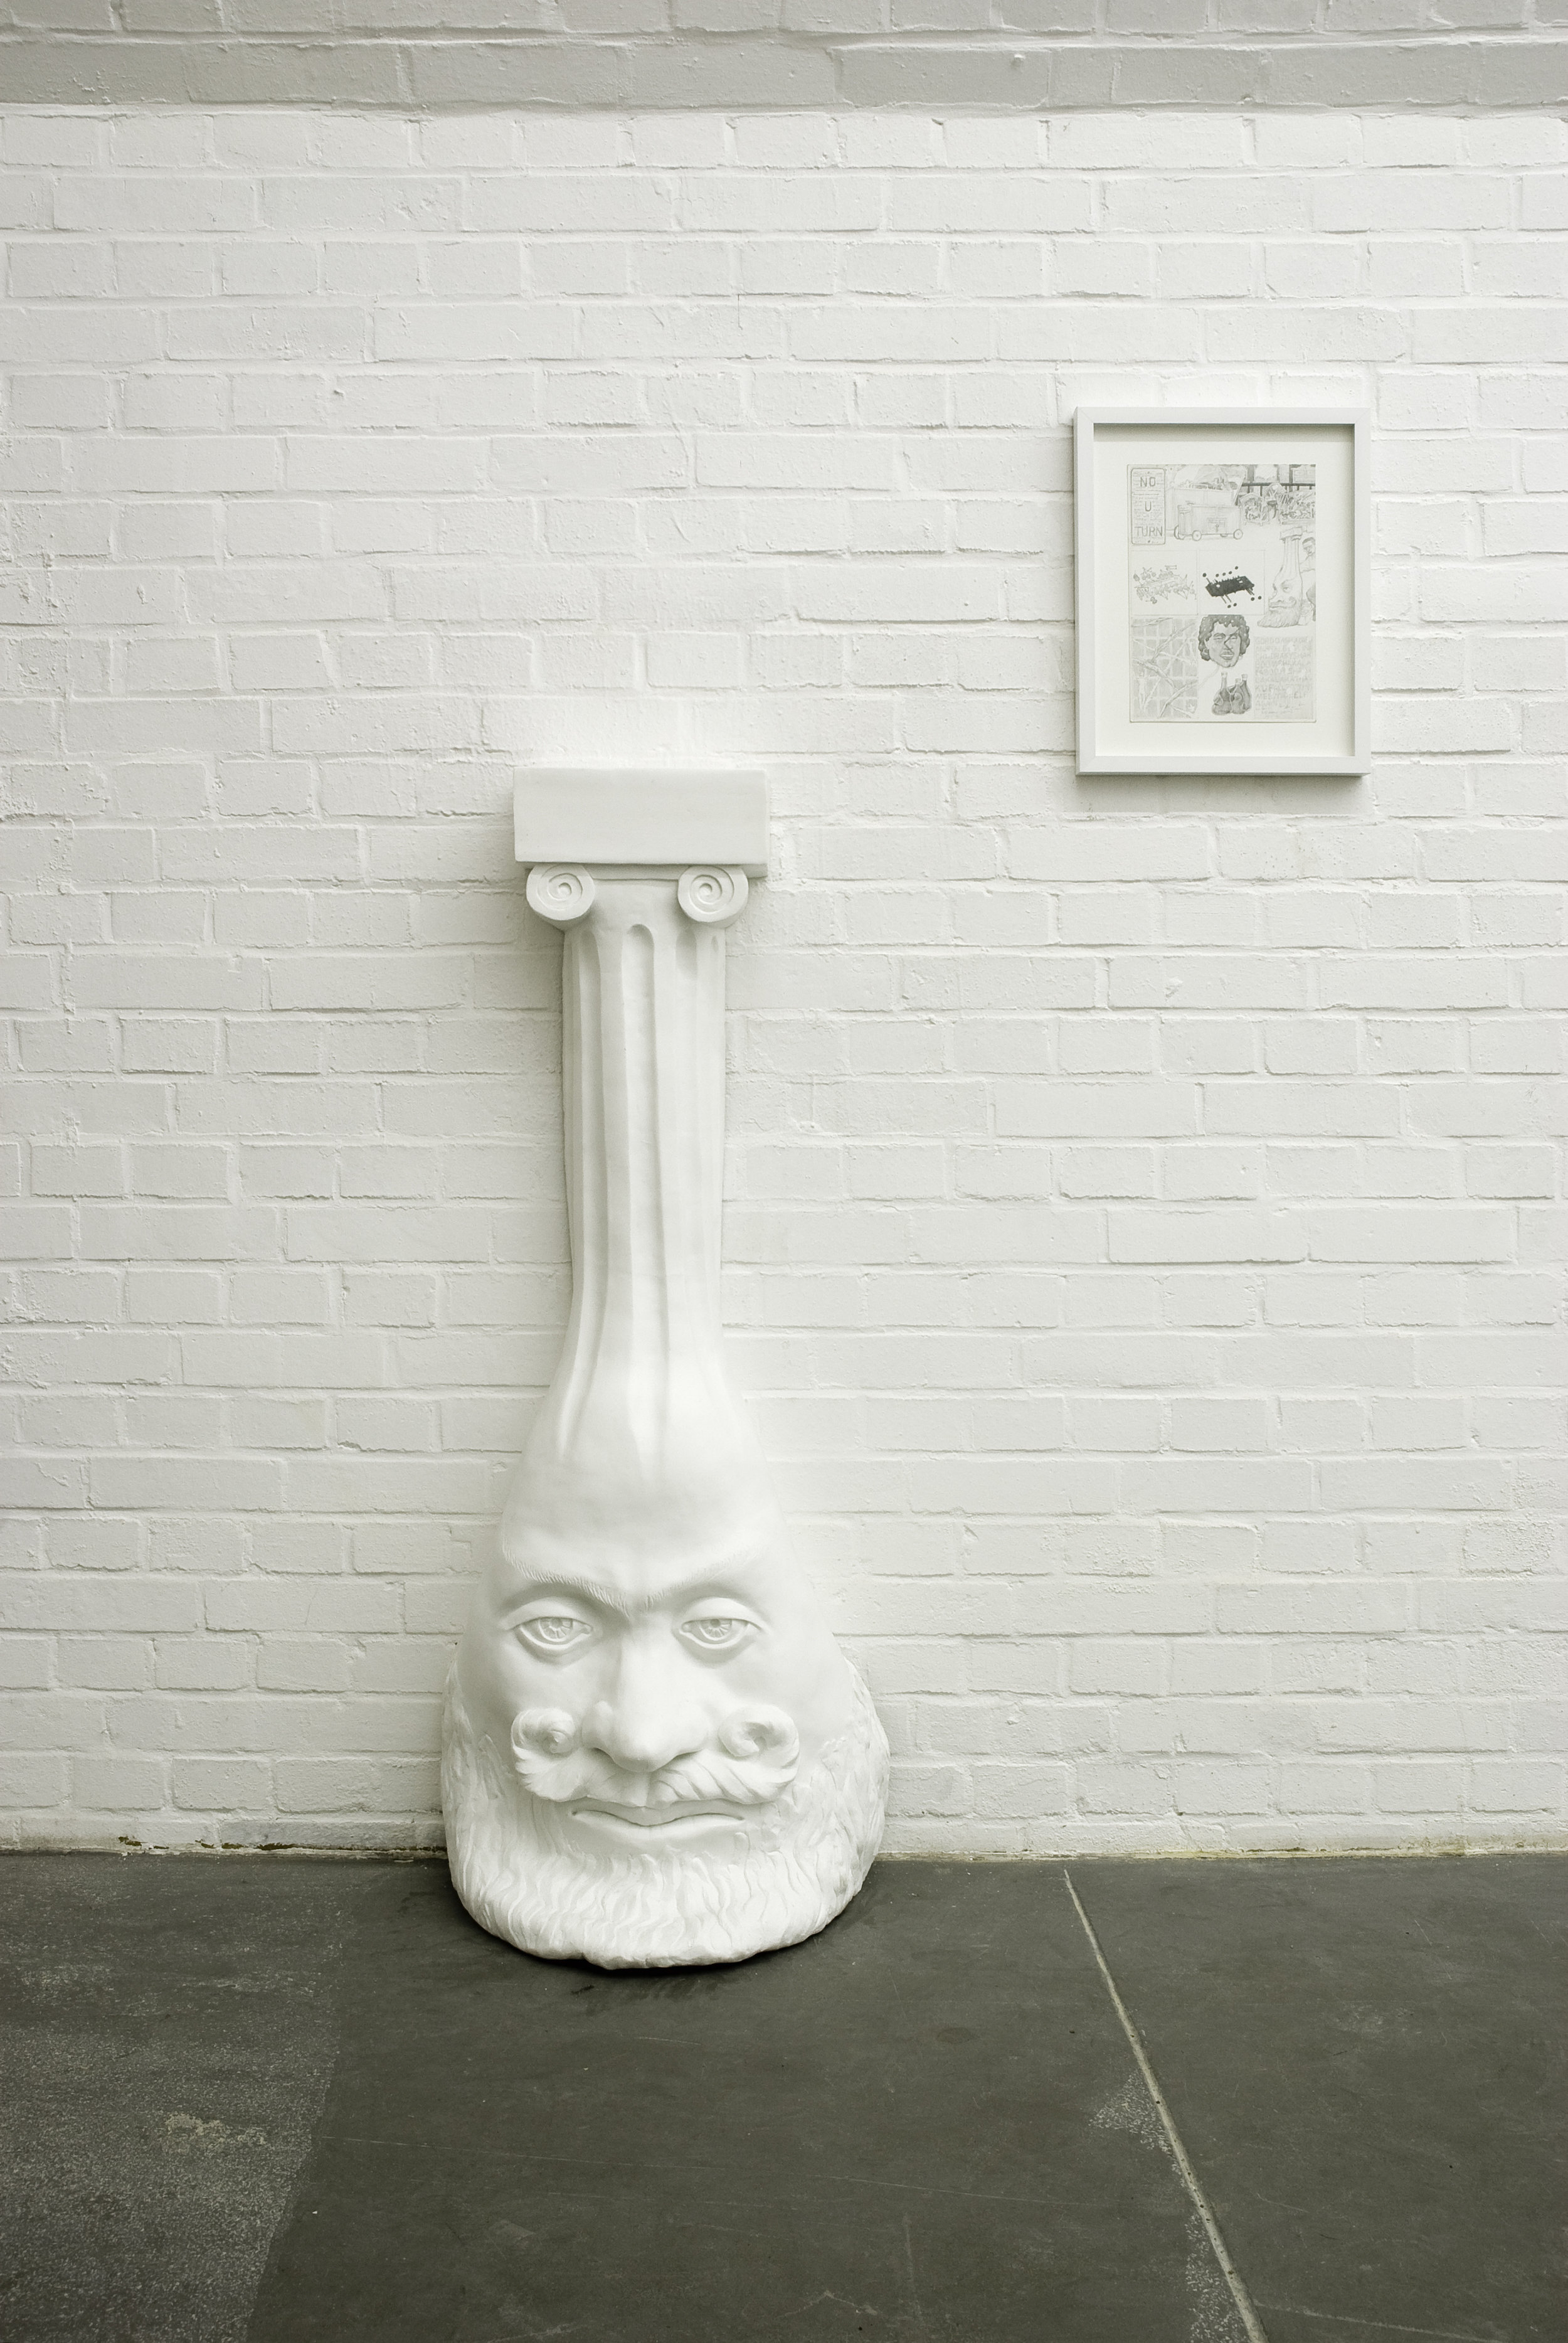 "Dream Object (""I was pouring weird latex columns for Mike that had saggy pagan heads at the bottom.""), 2006 silicon and fiberglass edition of 3 140 x 43 x 35,5 cm - 55 1/8 x 16 7/8 x 14 inches"